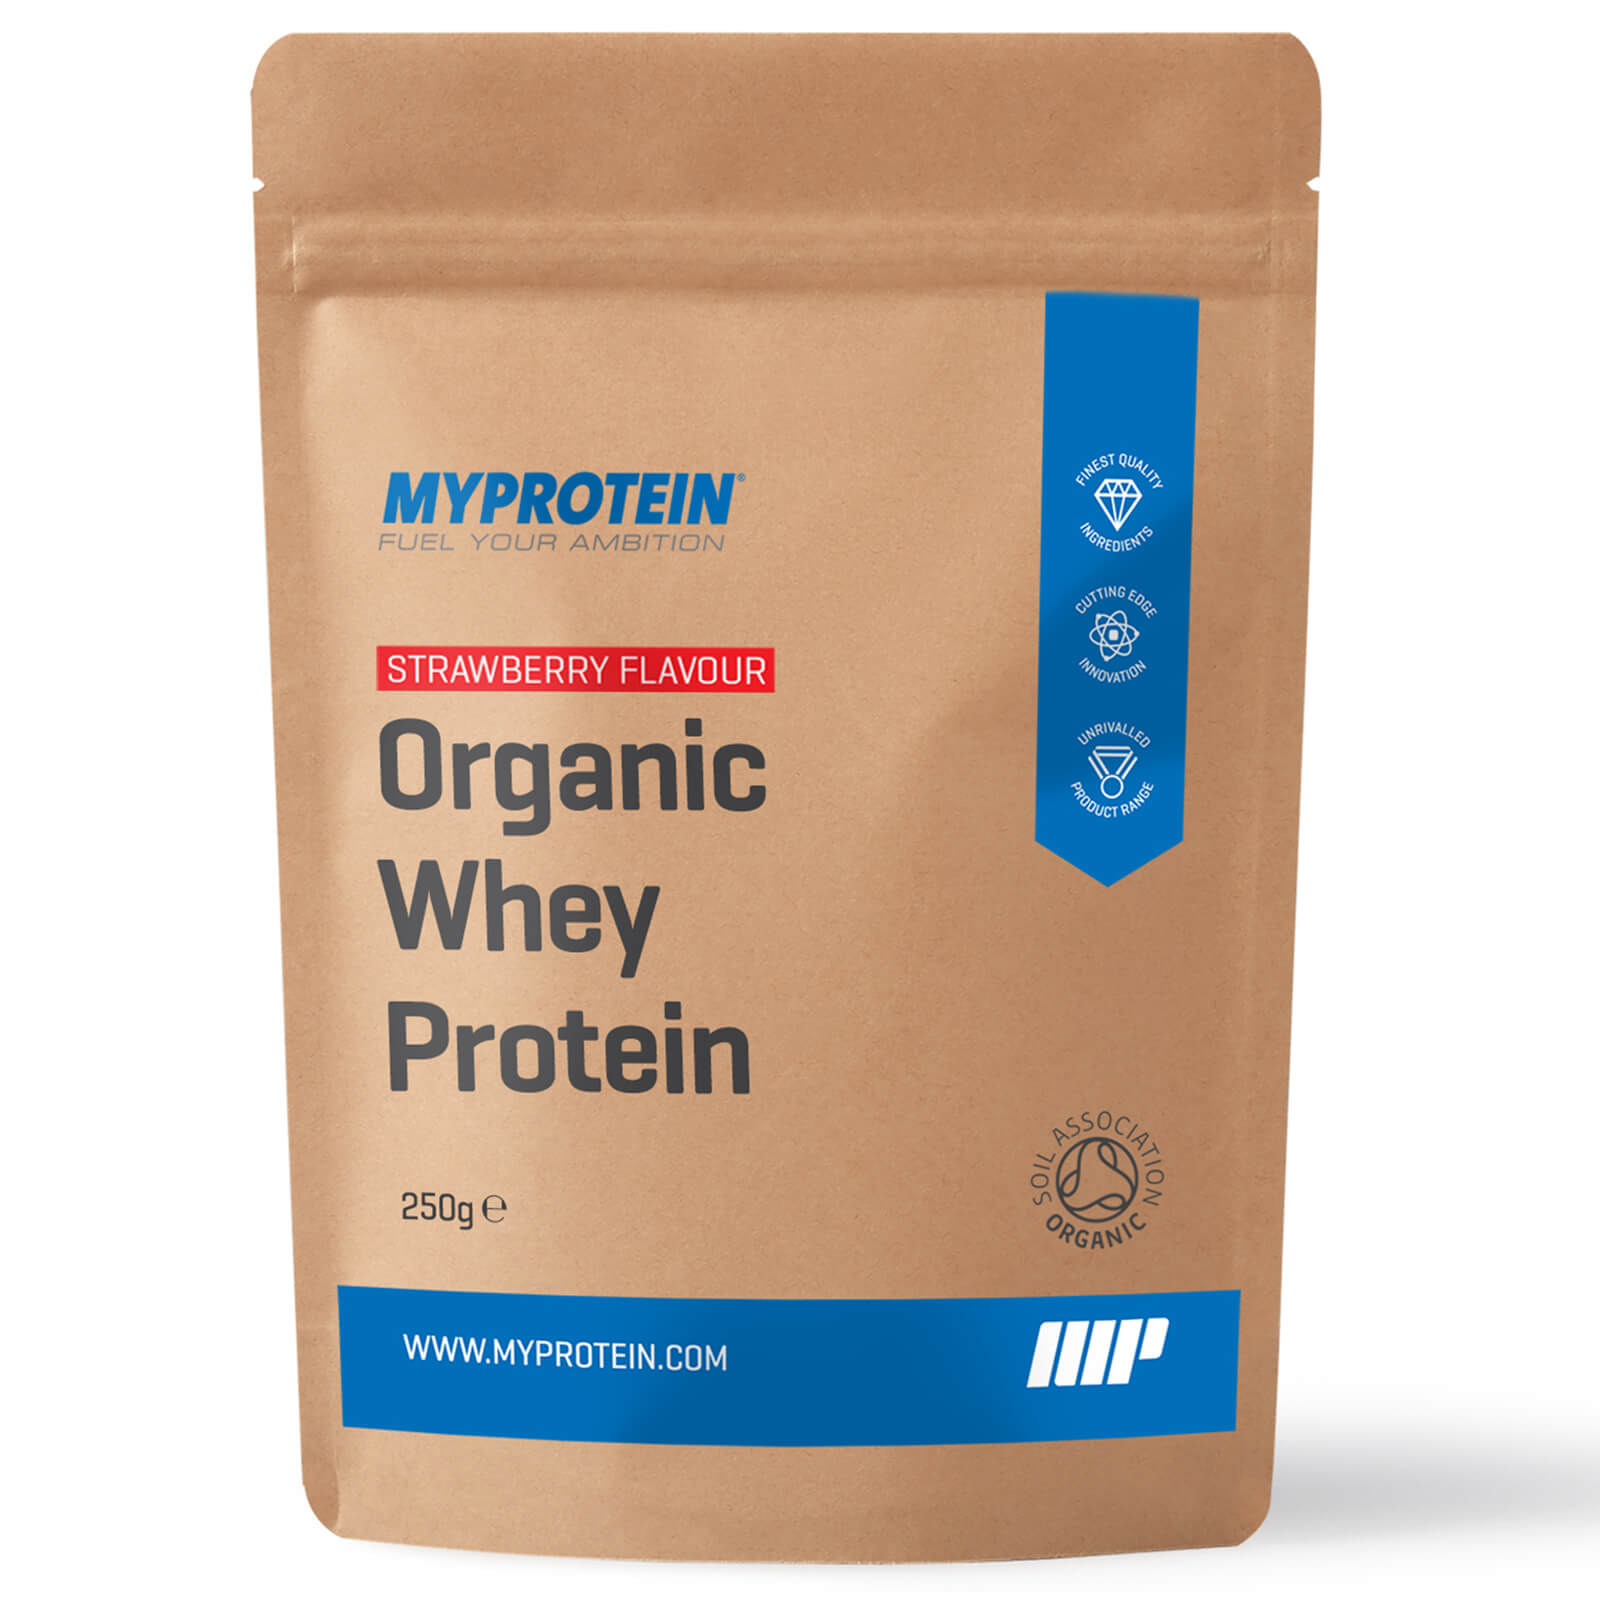 Organic Whey Protein - Strawberry Flavour- 250g